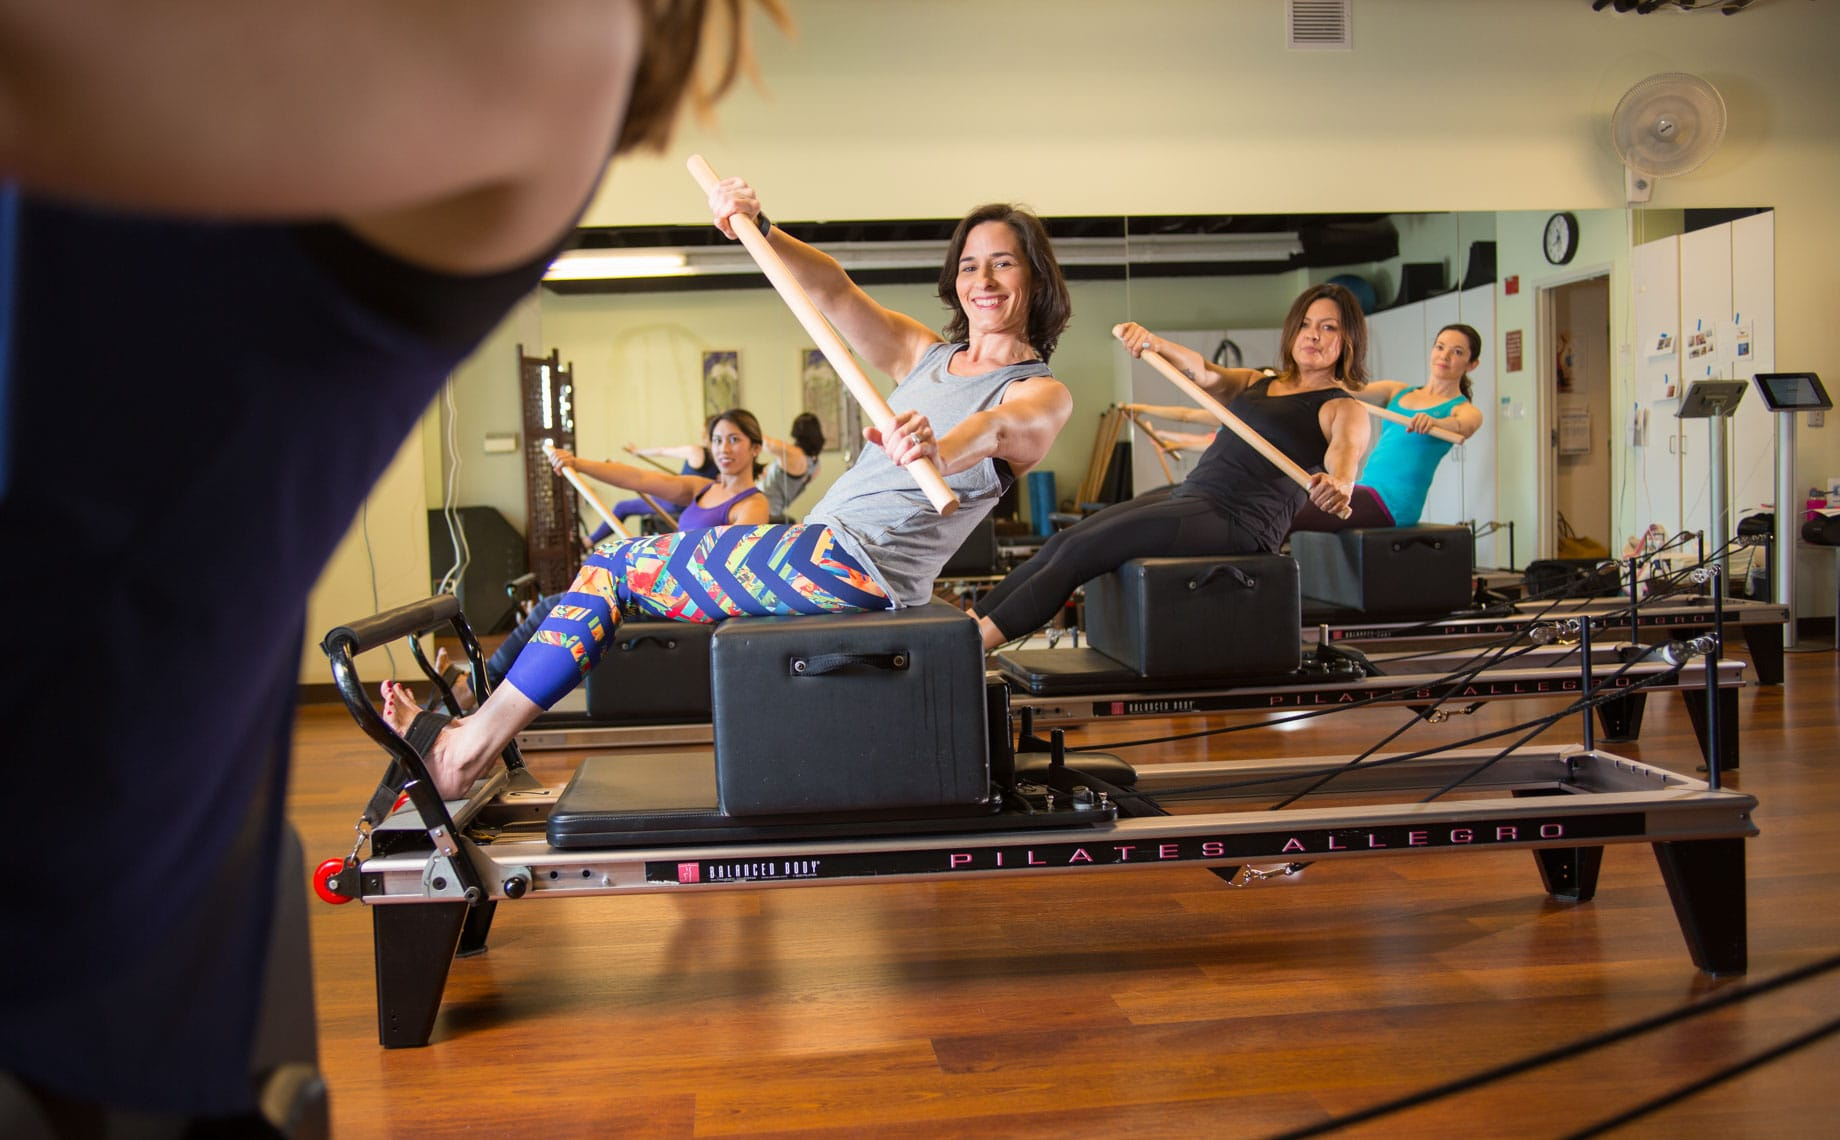 Women in a pilates class on reformers